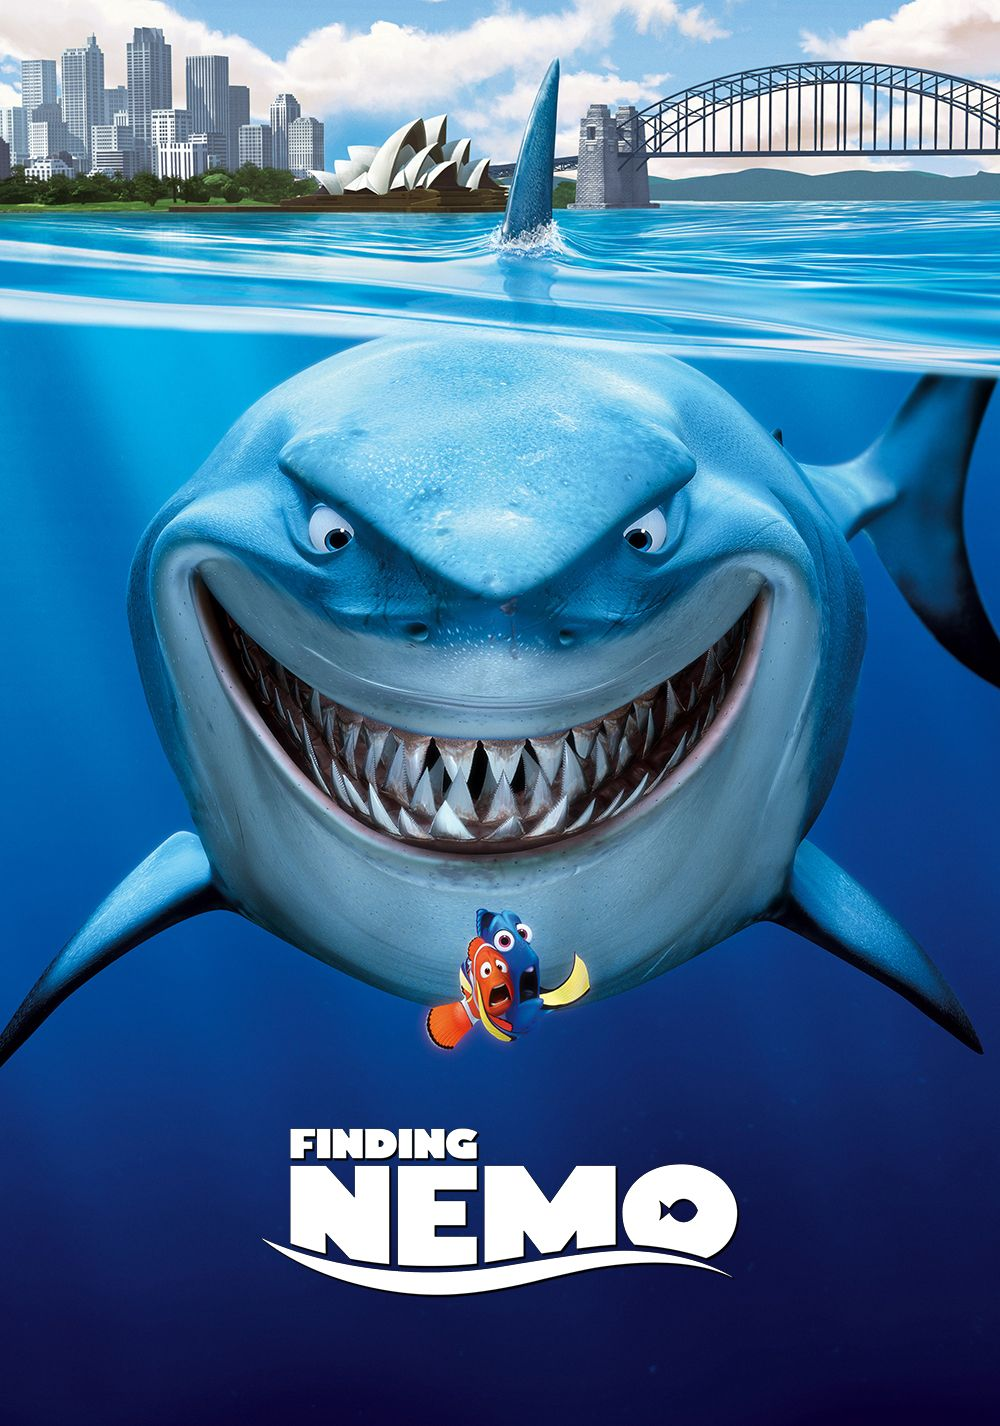 Finding Nemo (2003) #movieposter #3dcartoon